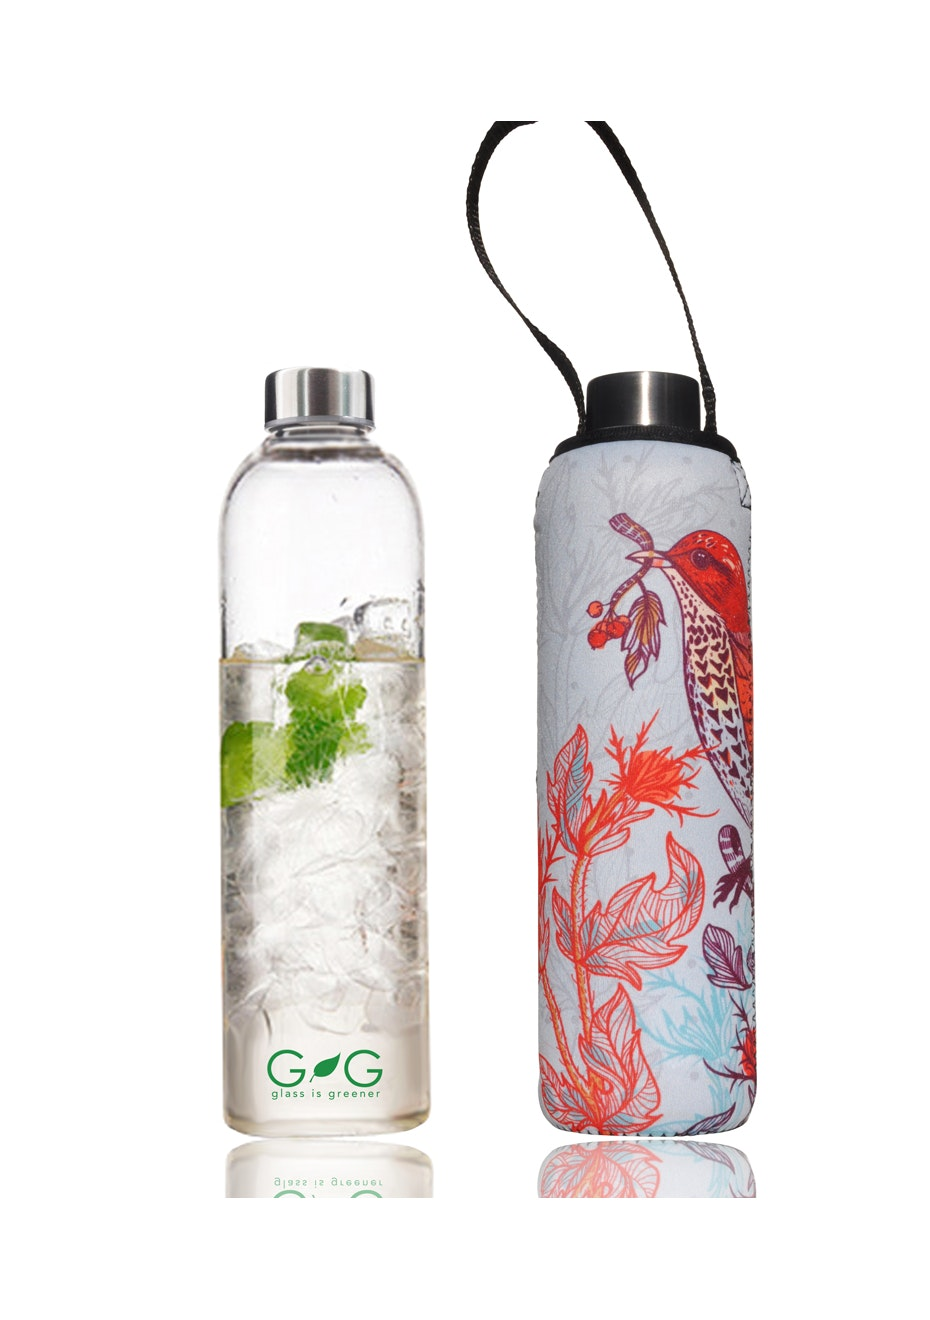 BBBYO - Glass Is Greener Bottle 750 ml + Carry Cover (Pretty Print) -750 ml